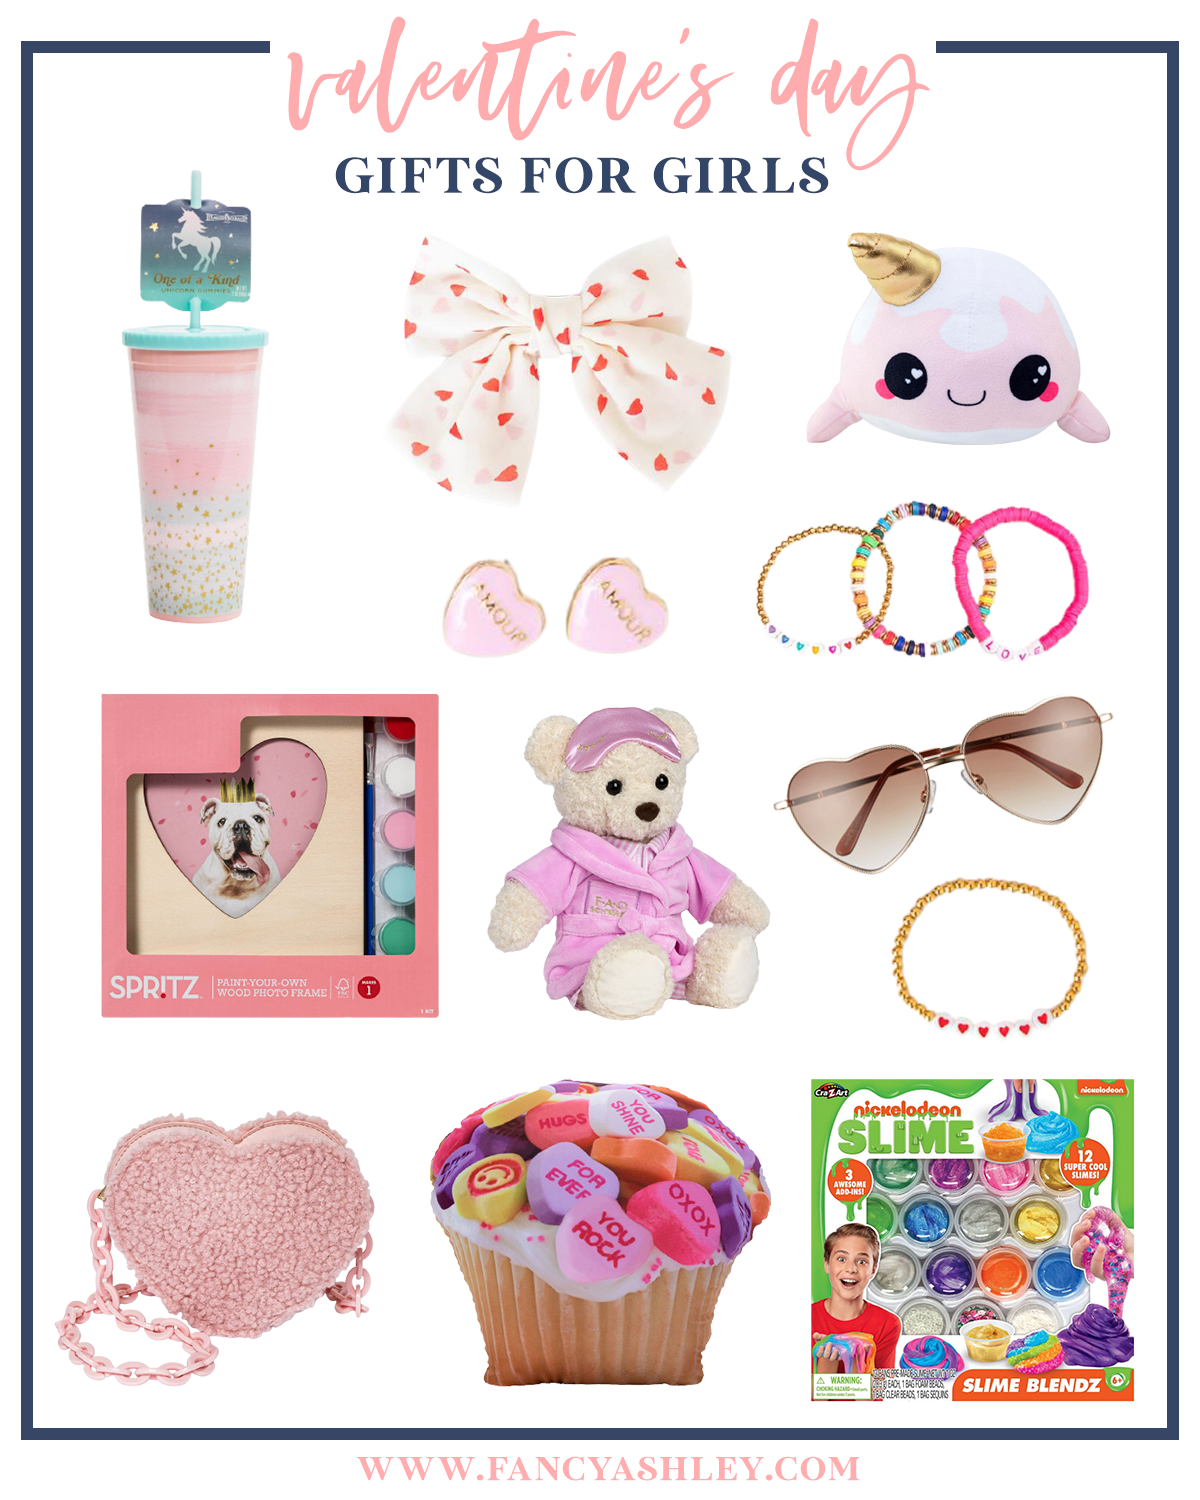 Valentine's Day Gift Ideas for Kids by popular Houston life and style blog, Fancy Ashley: collage image of a white and red heart print bow, rainbow bead bracelets, heart shaped sunglasses, heart shaped purse, slime kit, unicorn tumbler, Spritz heart frame paint kit, gold and heart beat stretch bracelet, candy heart cupcake pillow, heart earrings, and stuffed narwhal.